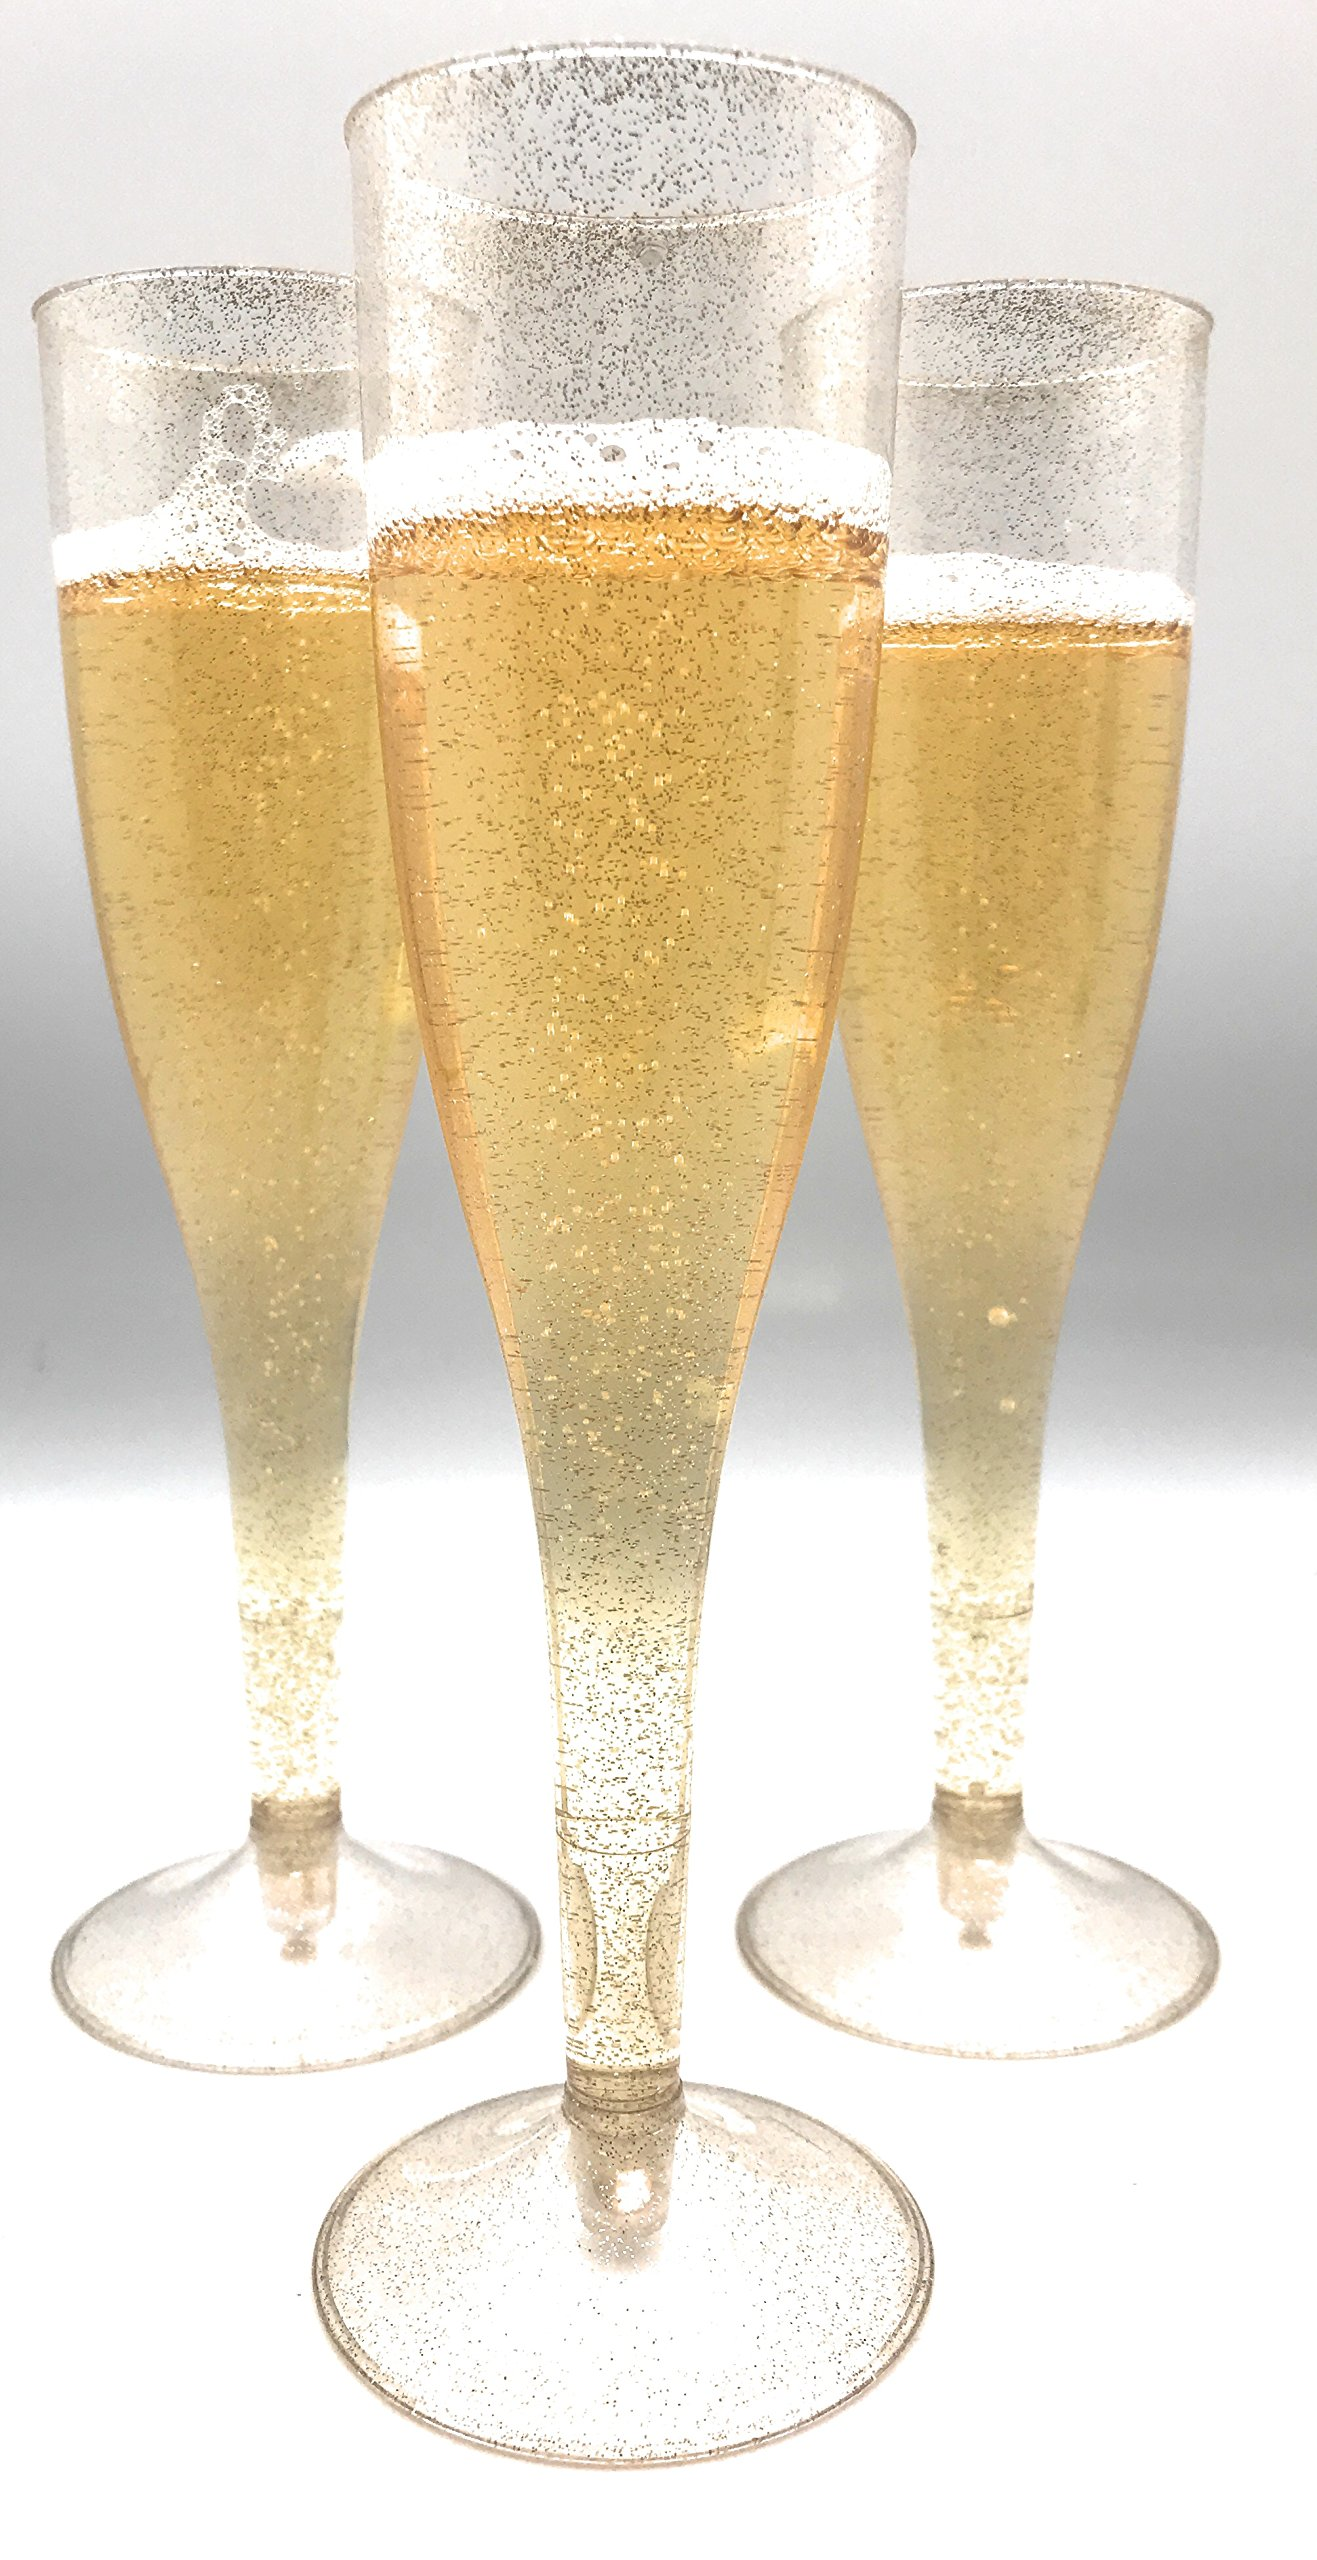 30pc Clear Plastic With Gold Glitter Classicware Glass Like Champagne Wedding Parties Toasting Flutes by Oojami (Image #5)